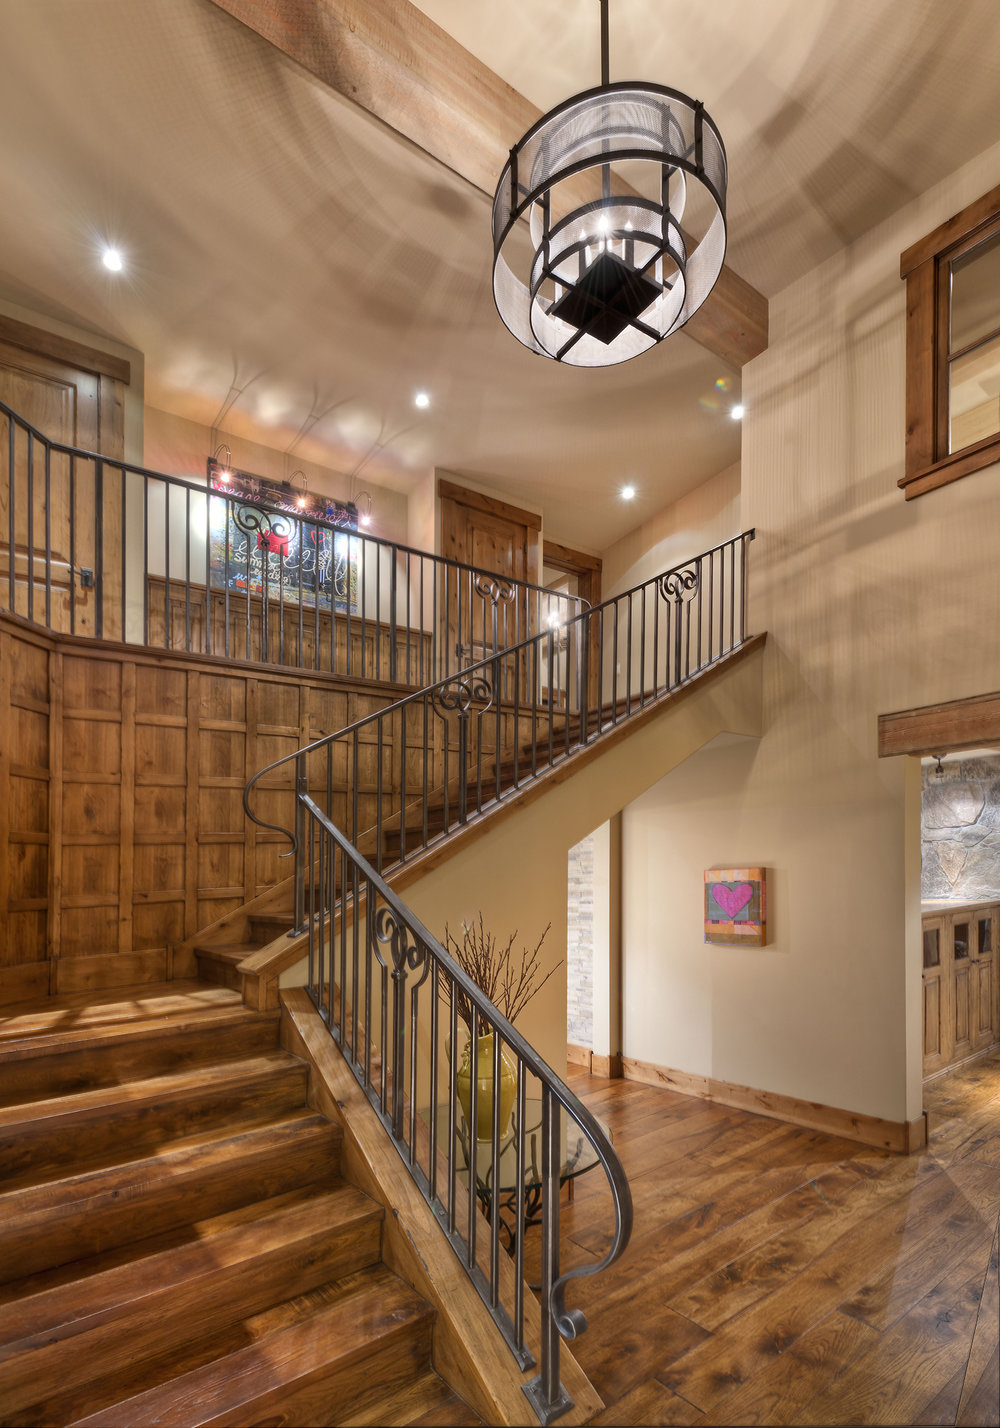 Lot 182_Staircase_Decorative Metal Railing_Wood Floors.jpg